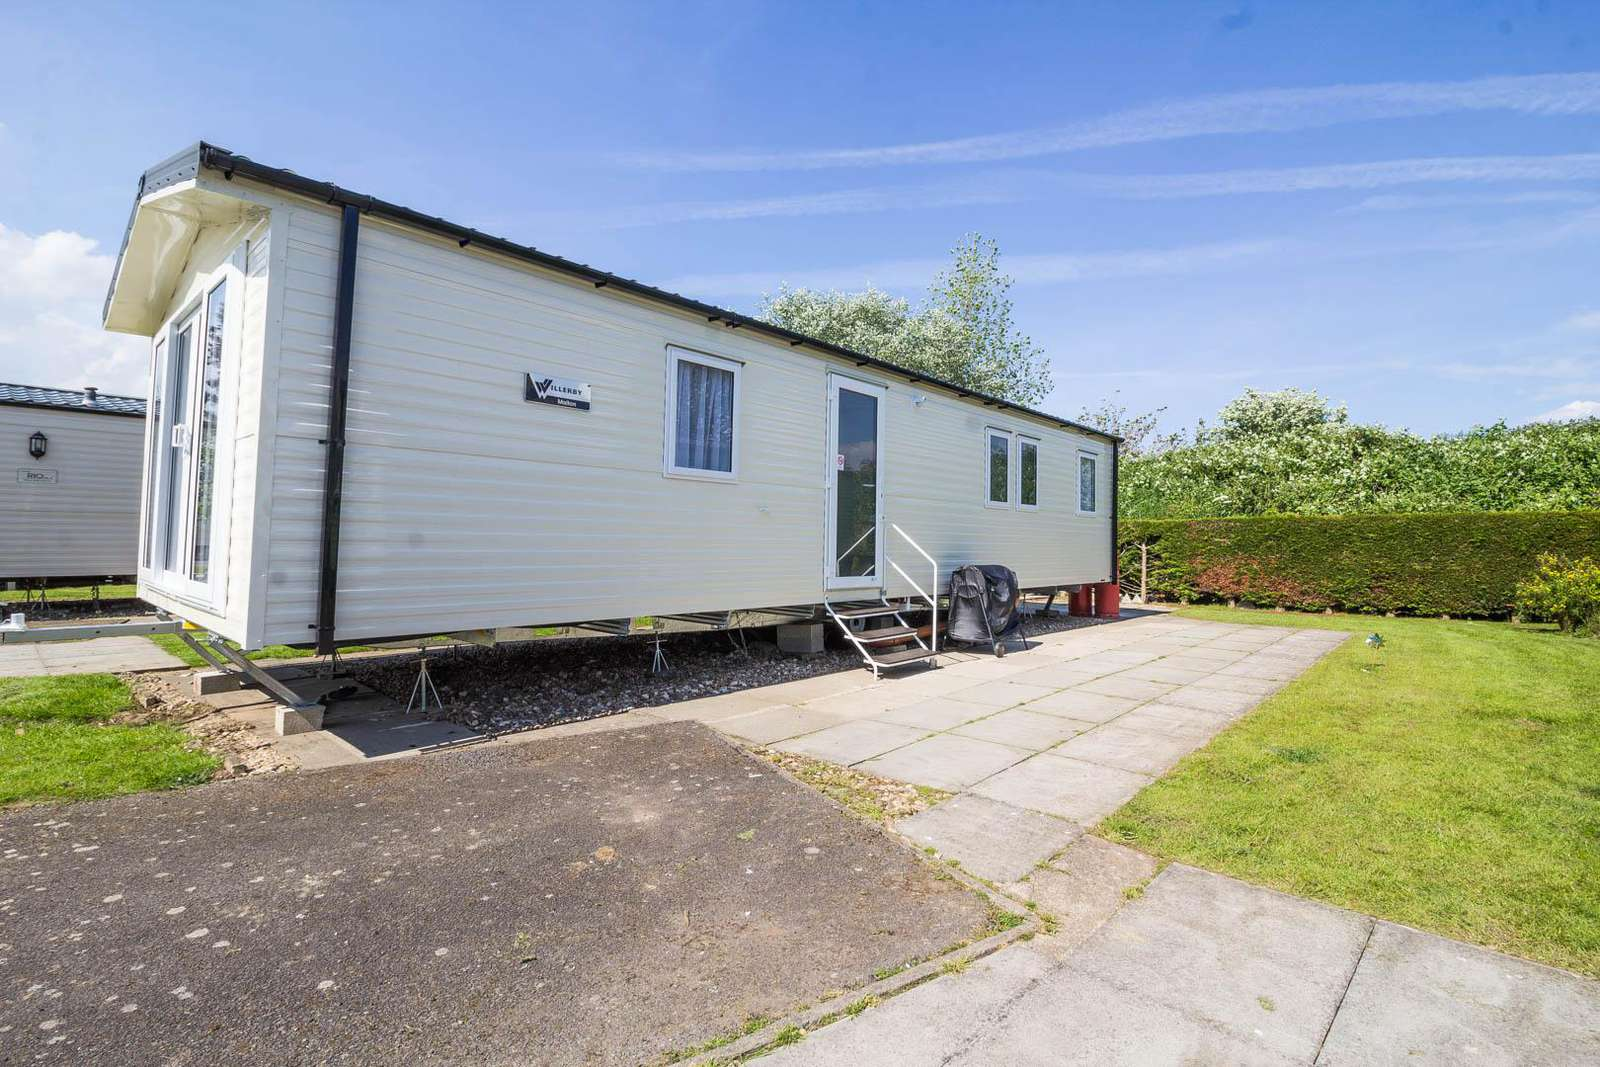 33040S – Springs area, 3 bed, 8 berth caravan close to amenities. Ruby rated. - property